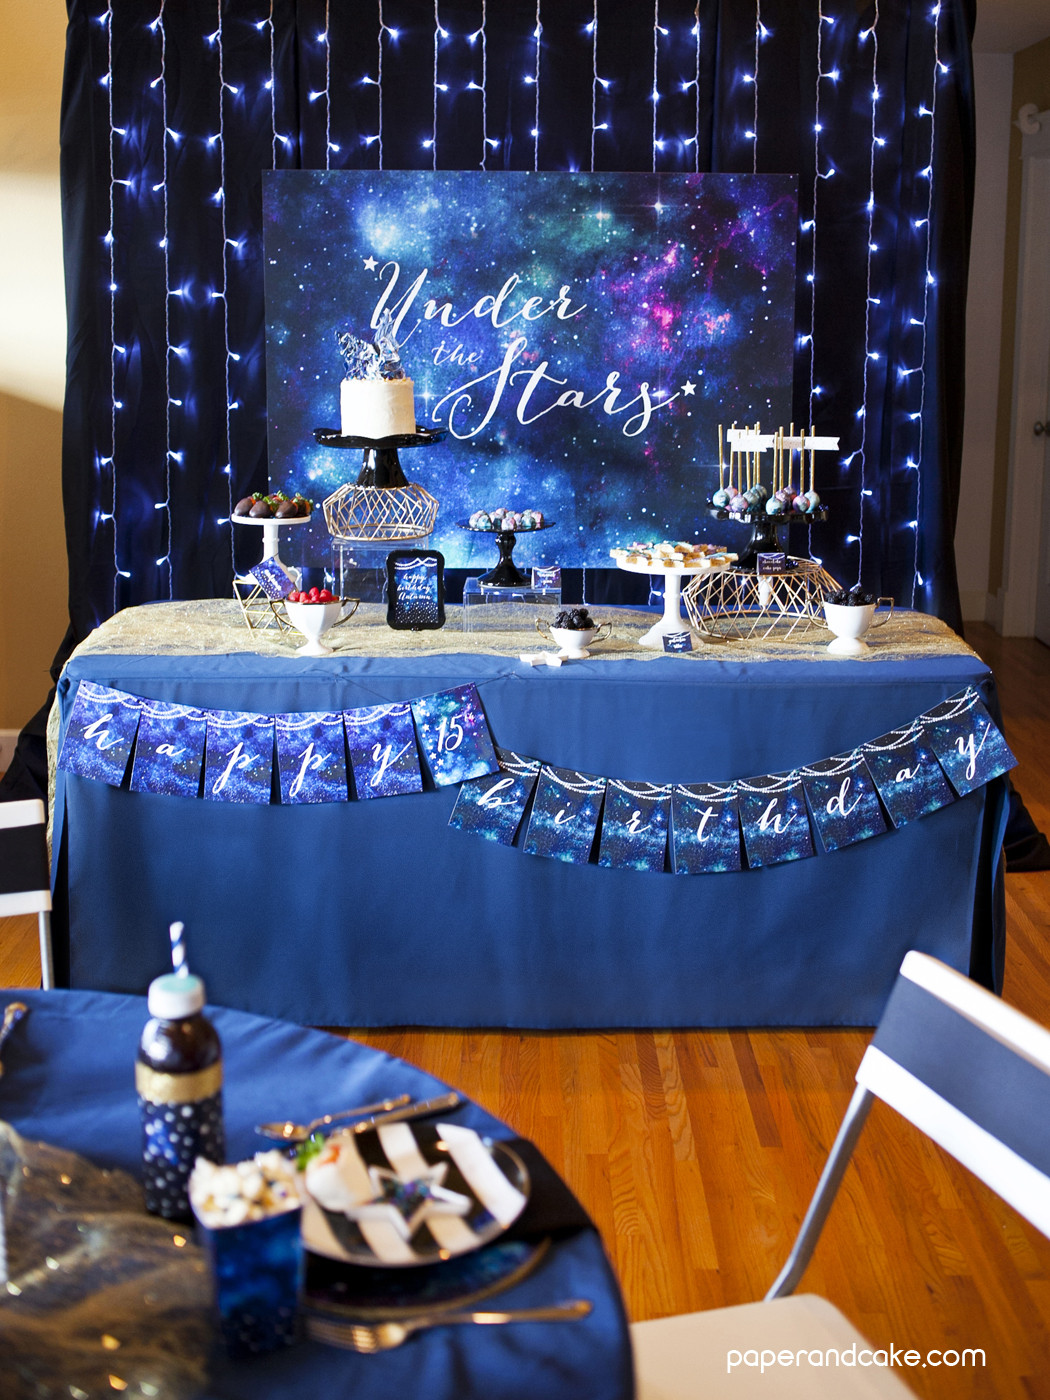 Best ideas about Decorations For 15 Birthday Party . Save or Pin Under the Stars 15th Birthday party Paper and Cake Paper Now.